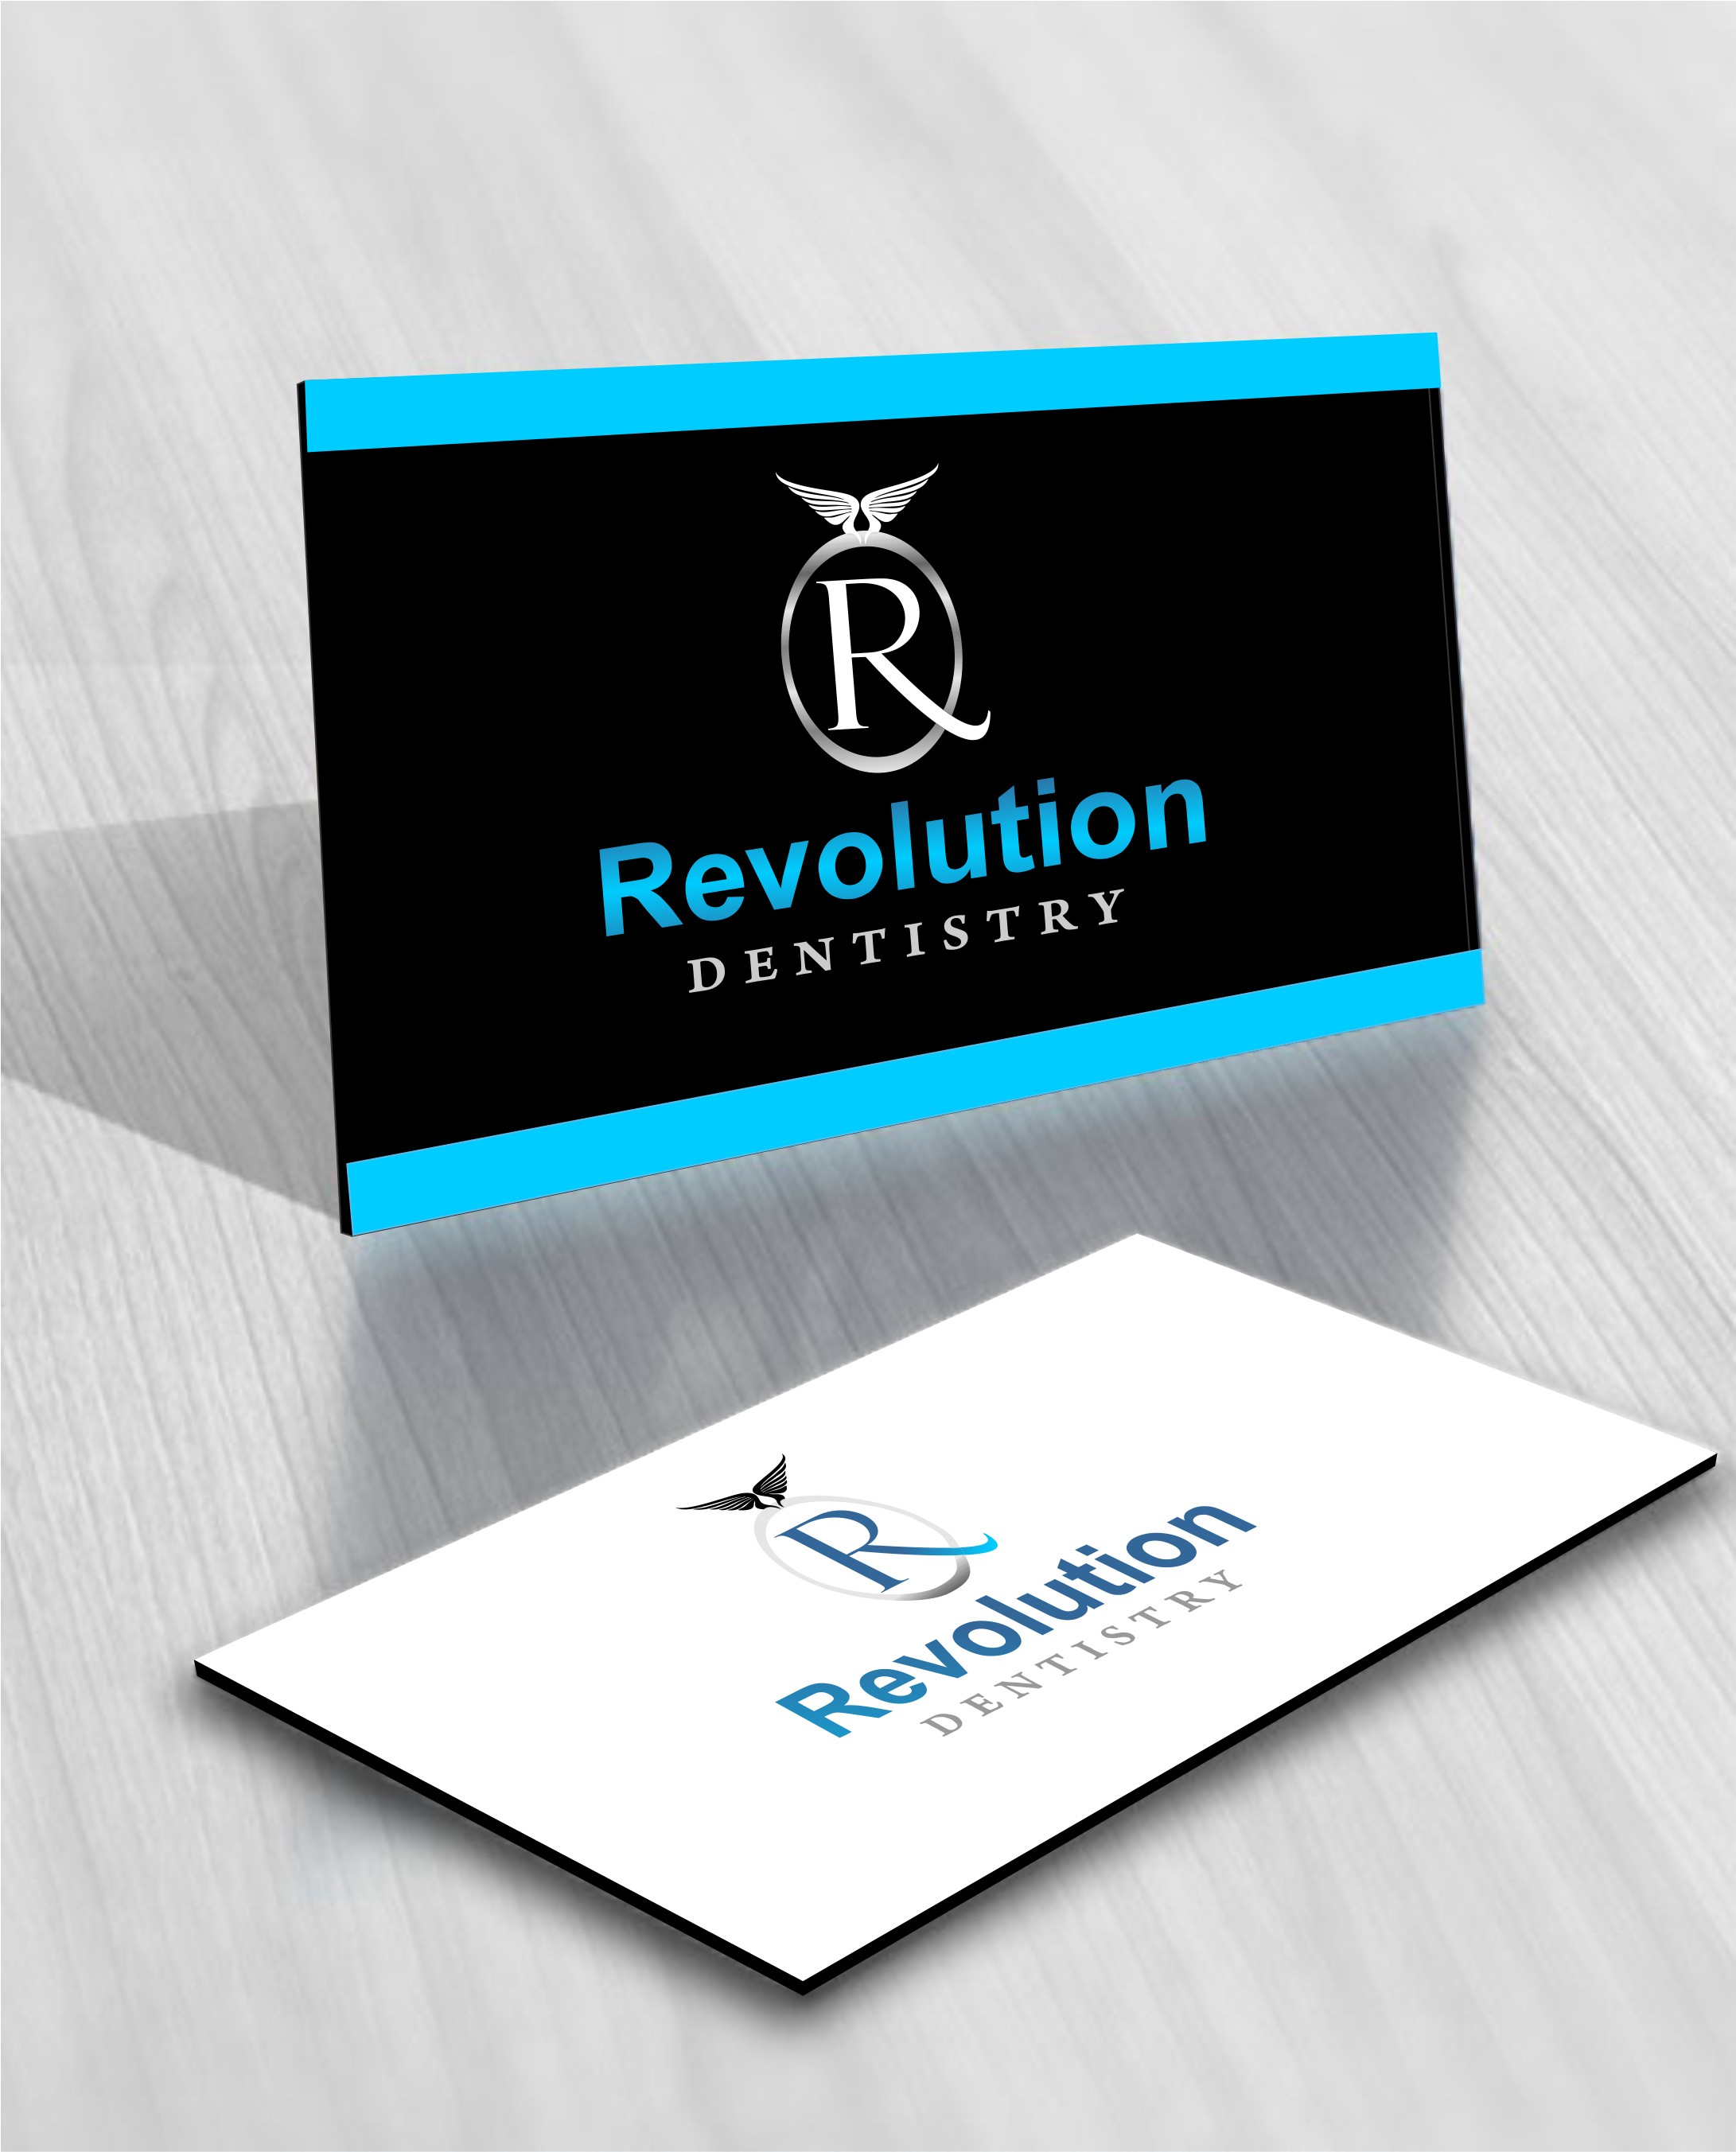 Logo Design by Mhon_Rose - Entry No. 9 in the Logo Design Contest Artistic Logo Design for Revolution Dentistry.